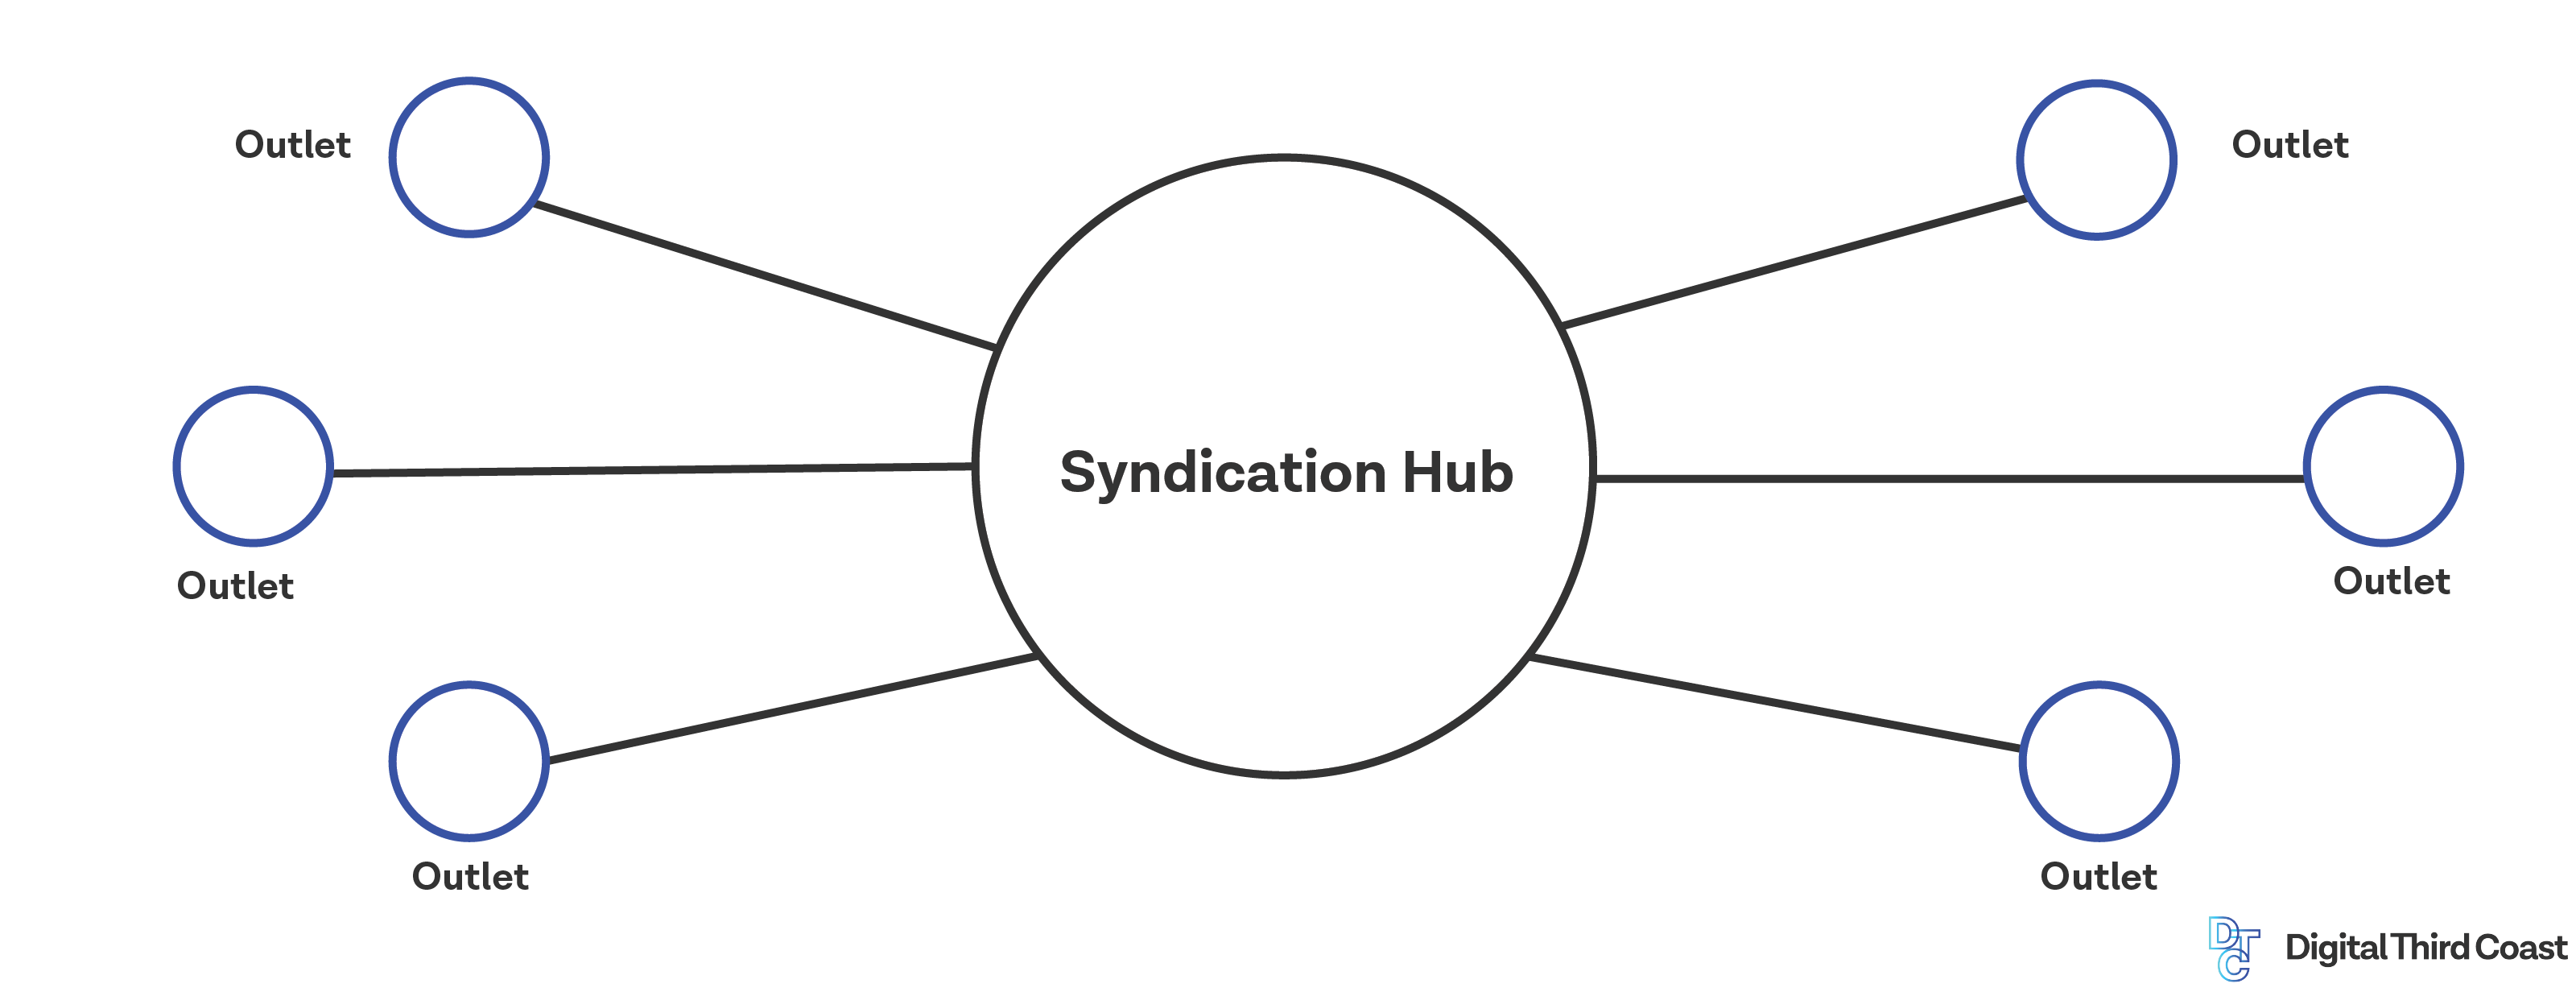 Syndication: Hub and spoke model